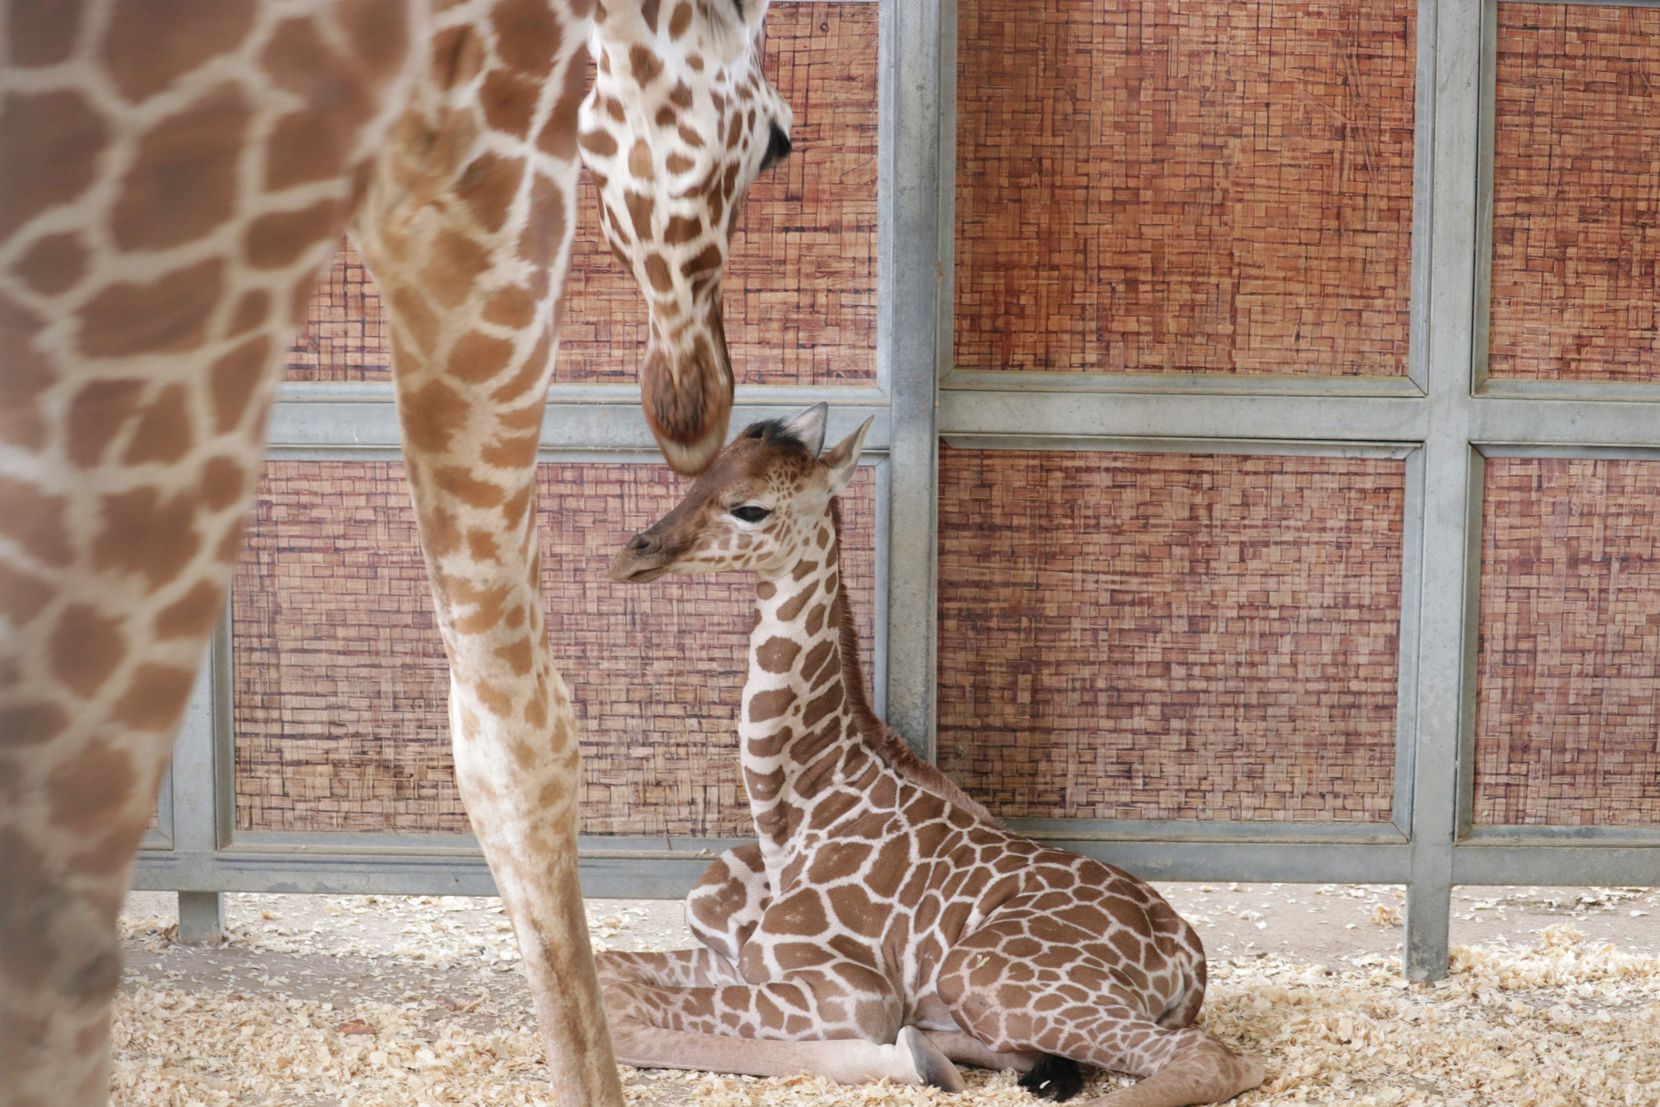 The Dallas Zoo's newest giraffe calf bonds in a behind-the-scenes enclosure with her mother, Chrystal.